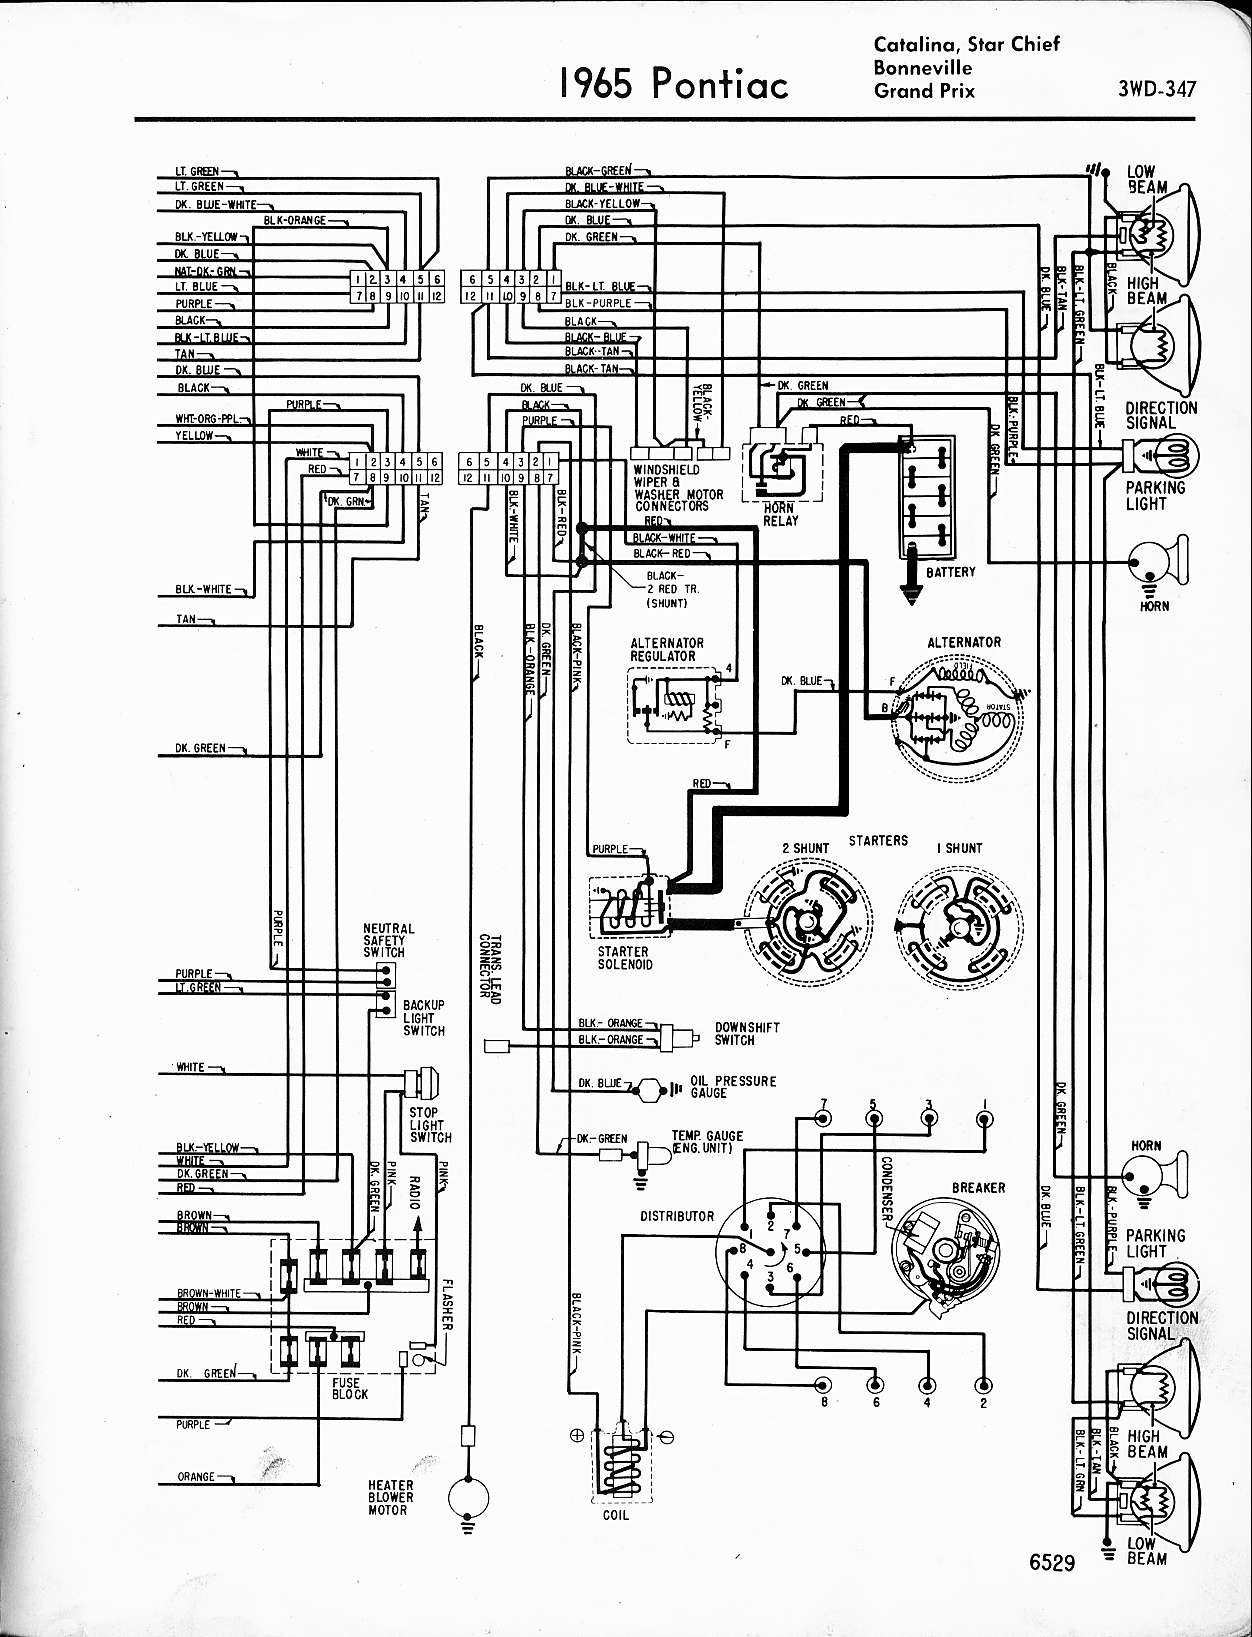 MWire5765 347 wallace racing wiring diagrams 2001 grand prix wiring diagram at creativeand.co